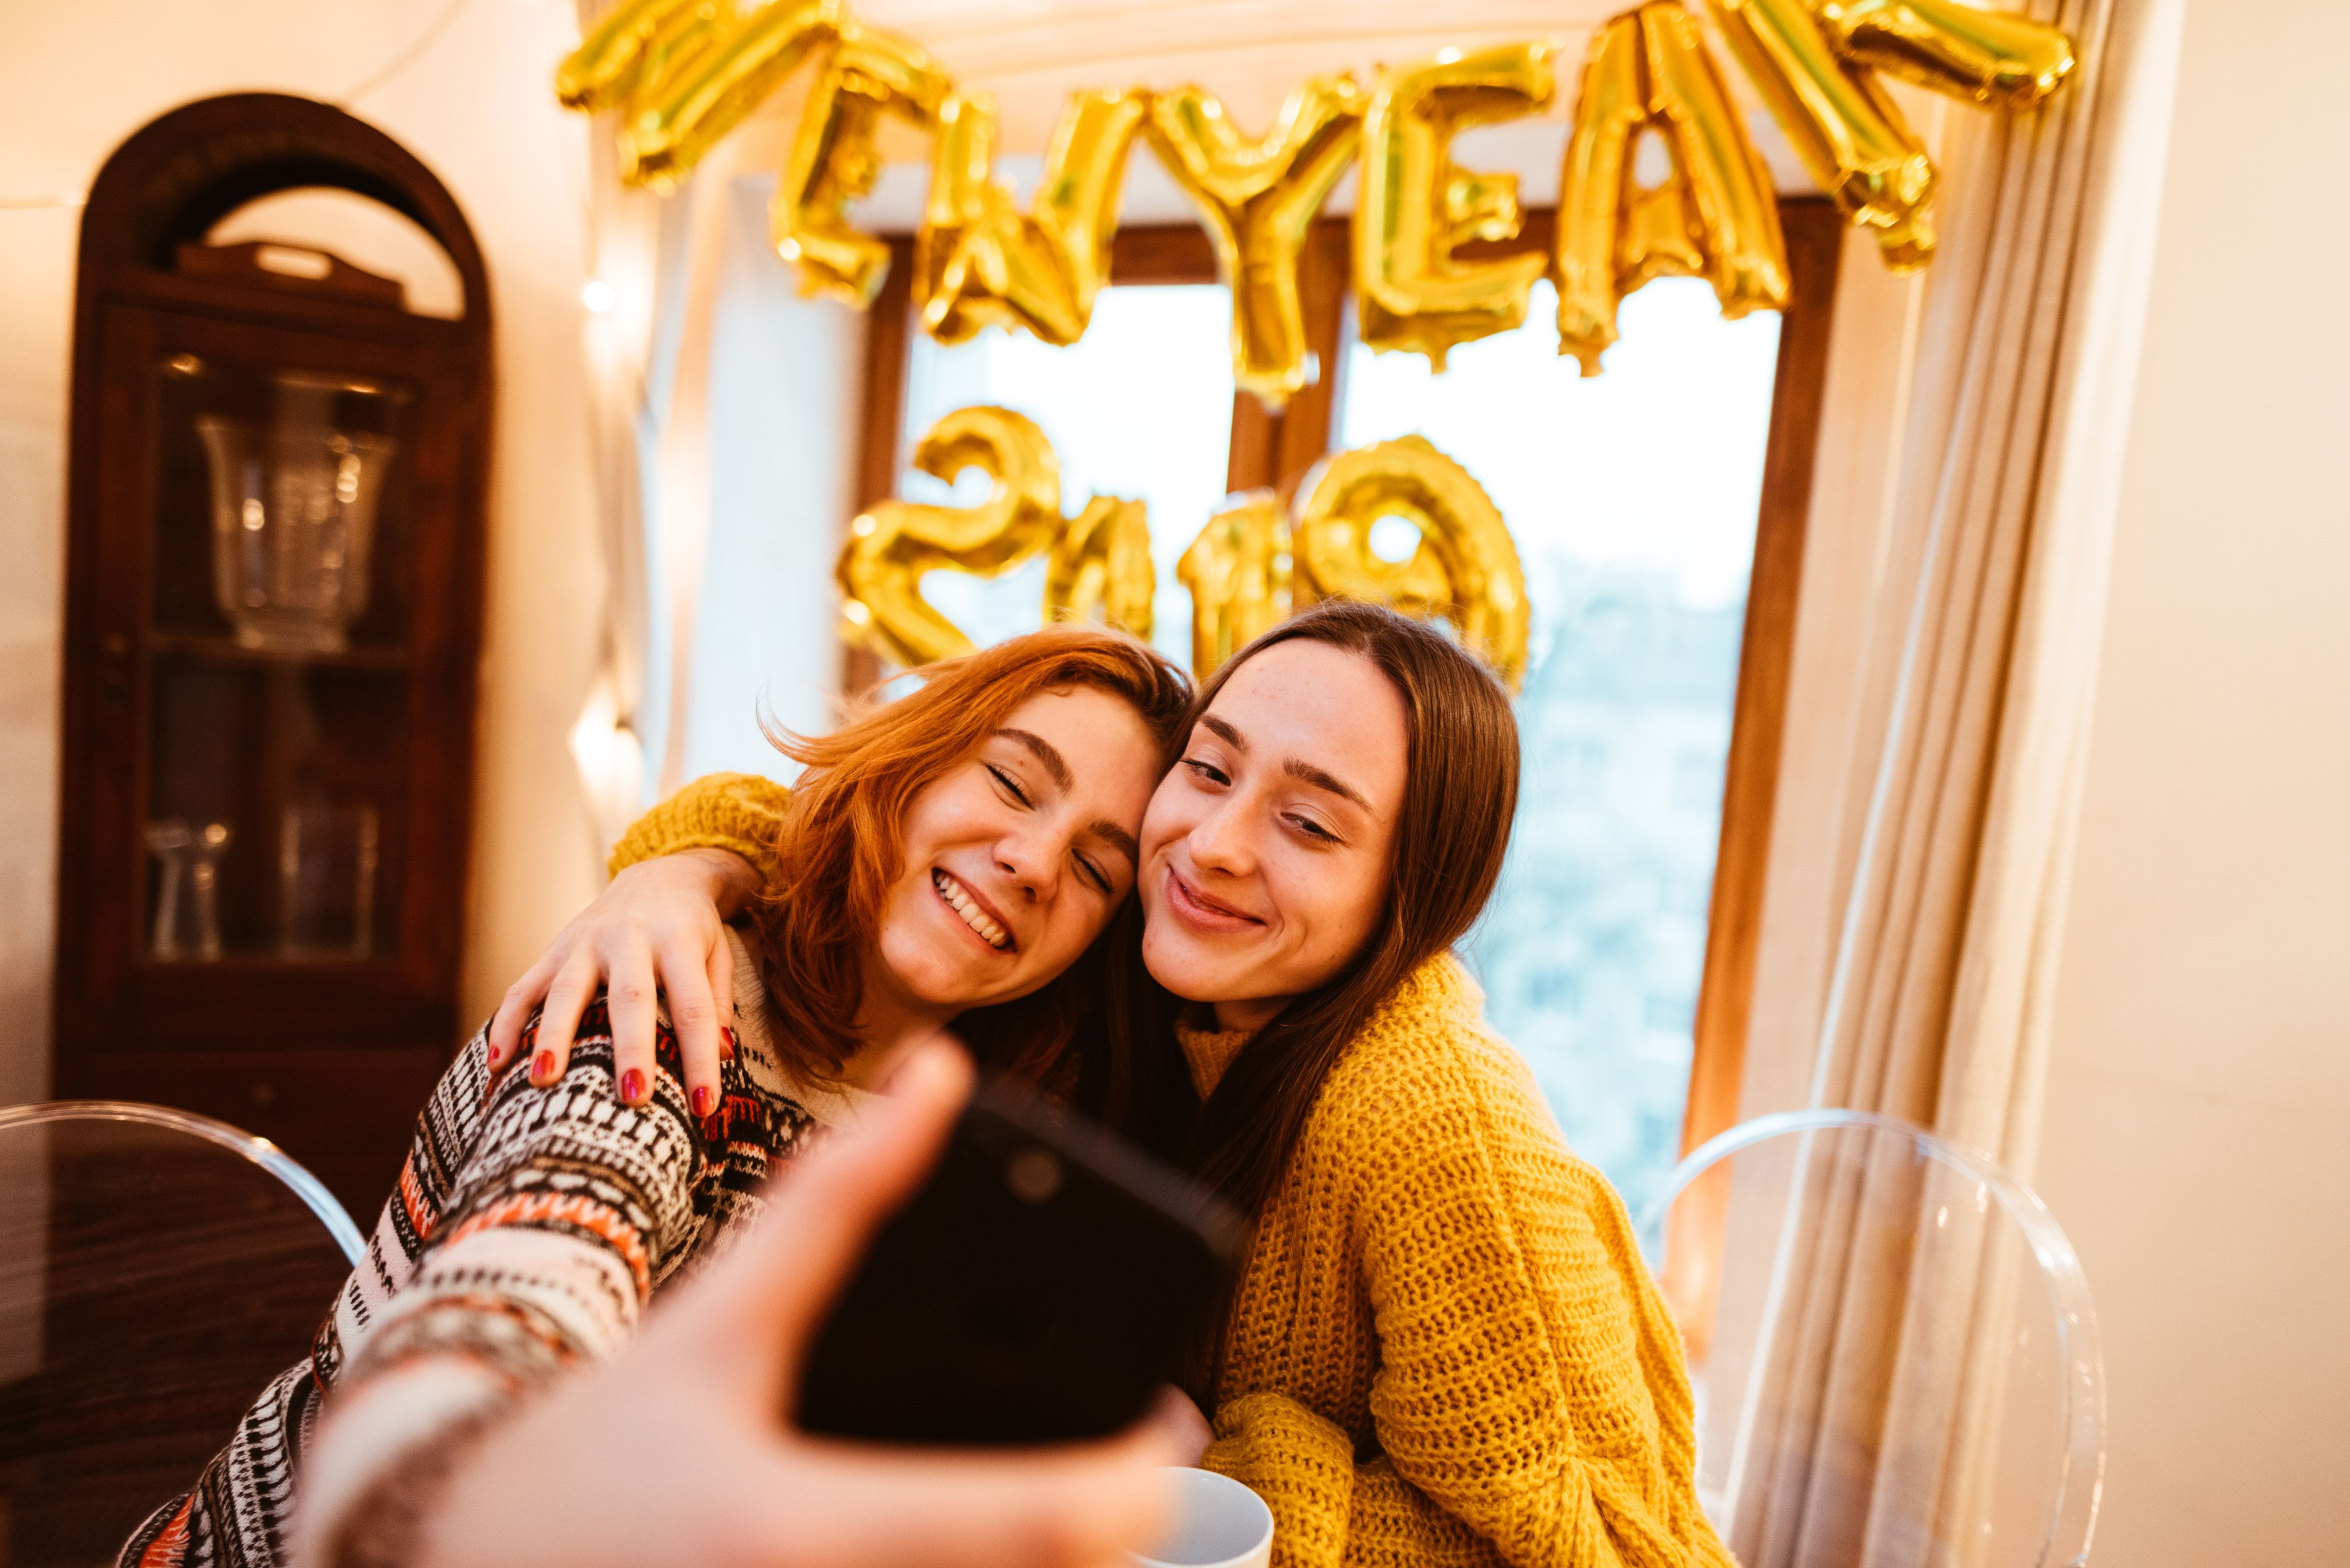 new years eve instagram captions nye captions for your photos